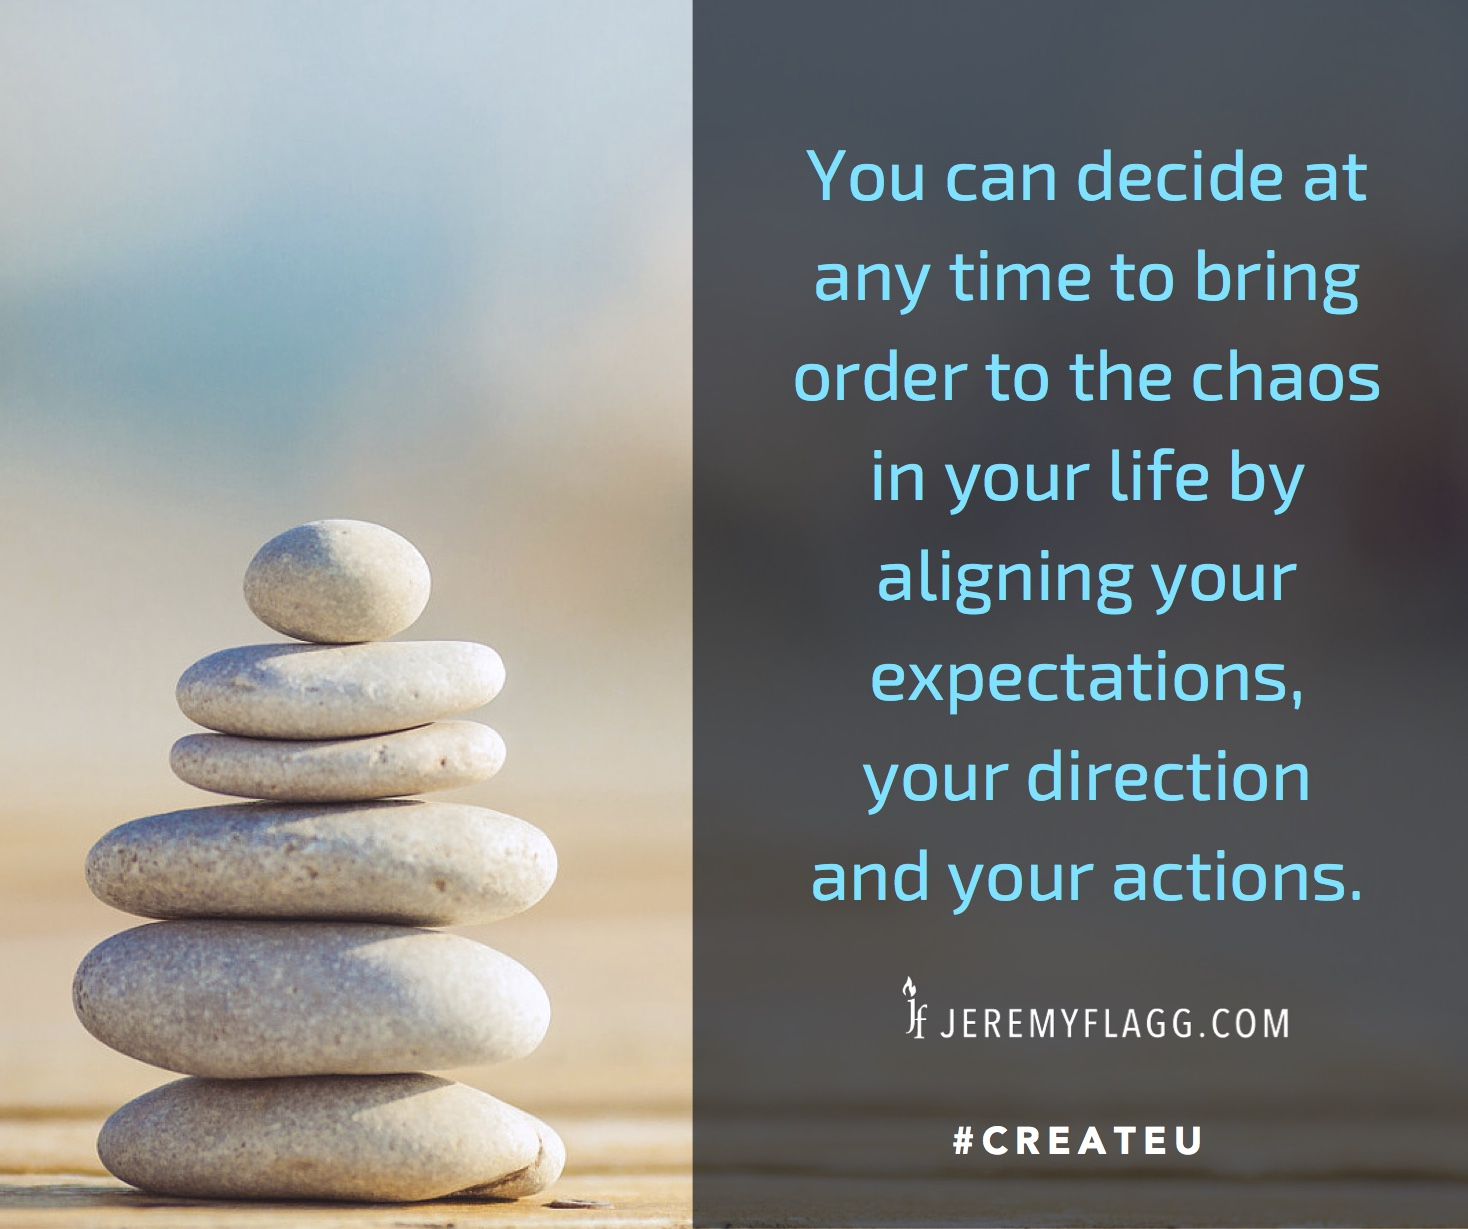 Align-your-expectations-direction-actions-Jeremy-Flagg-quote-FB